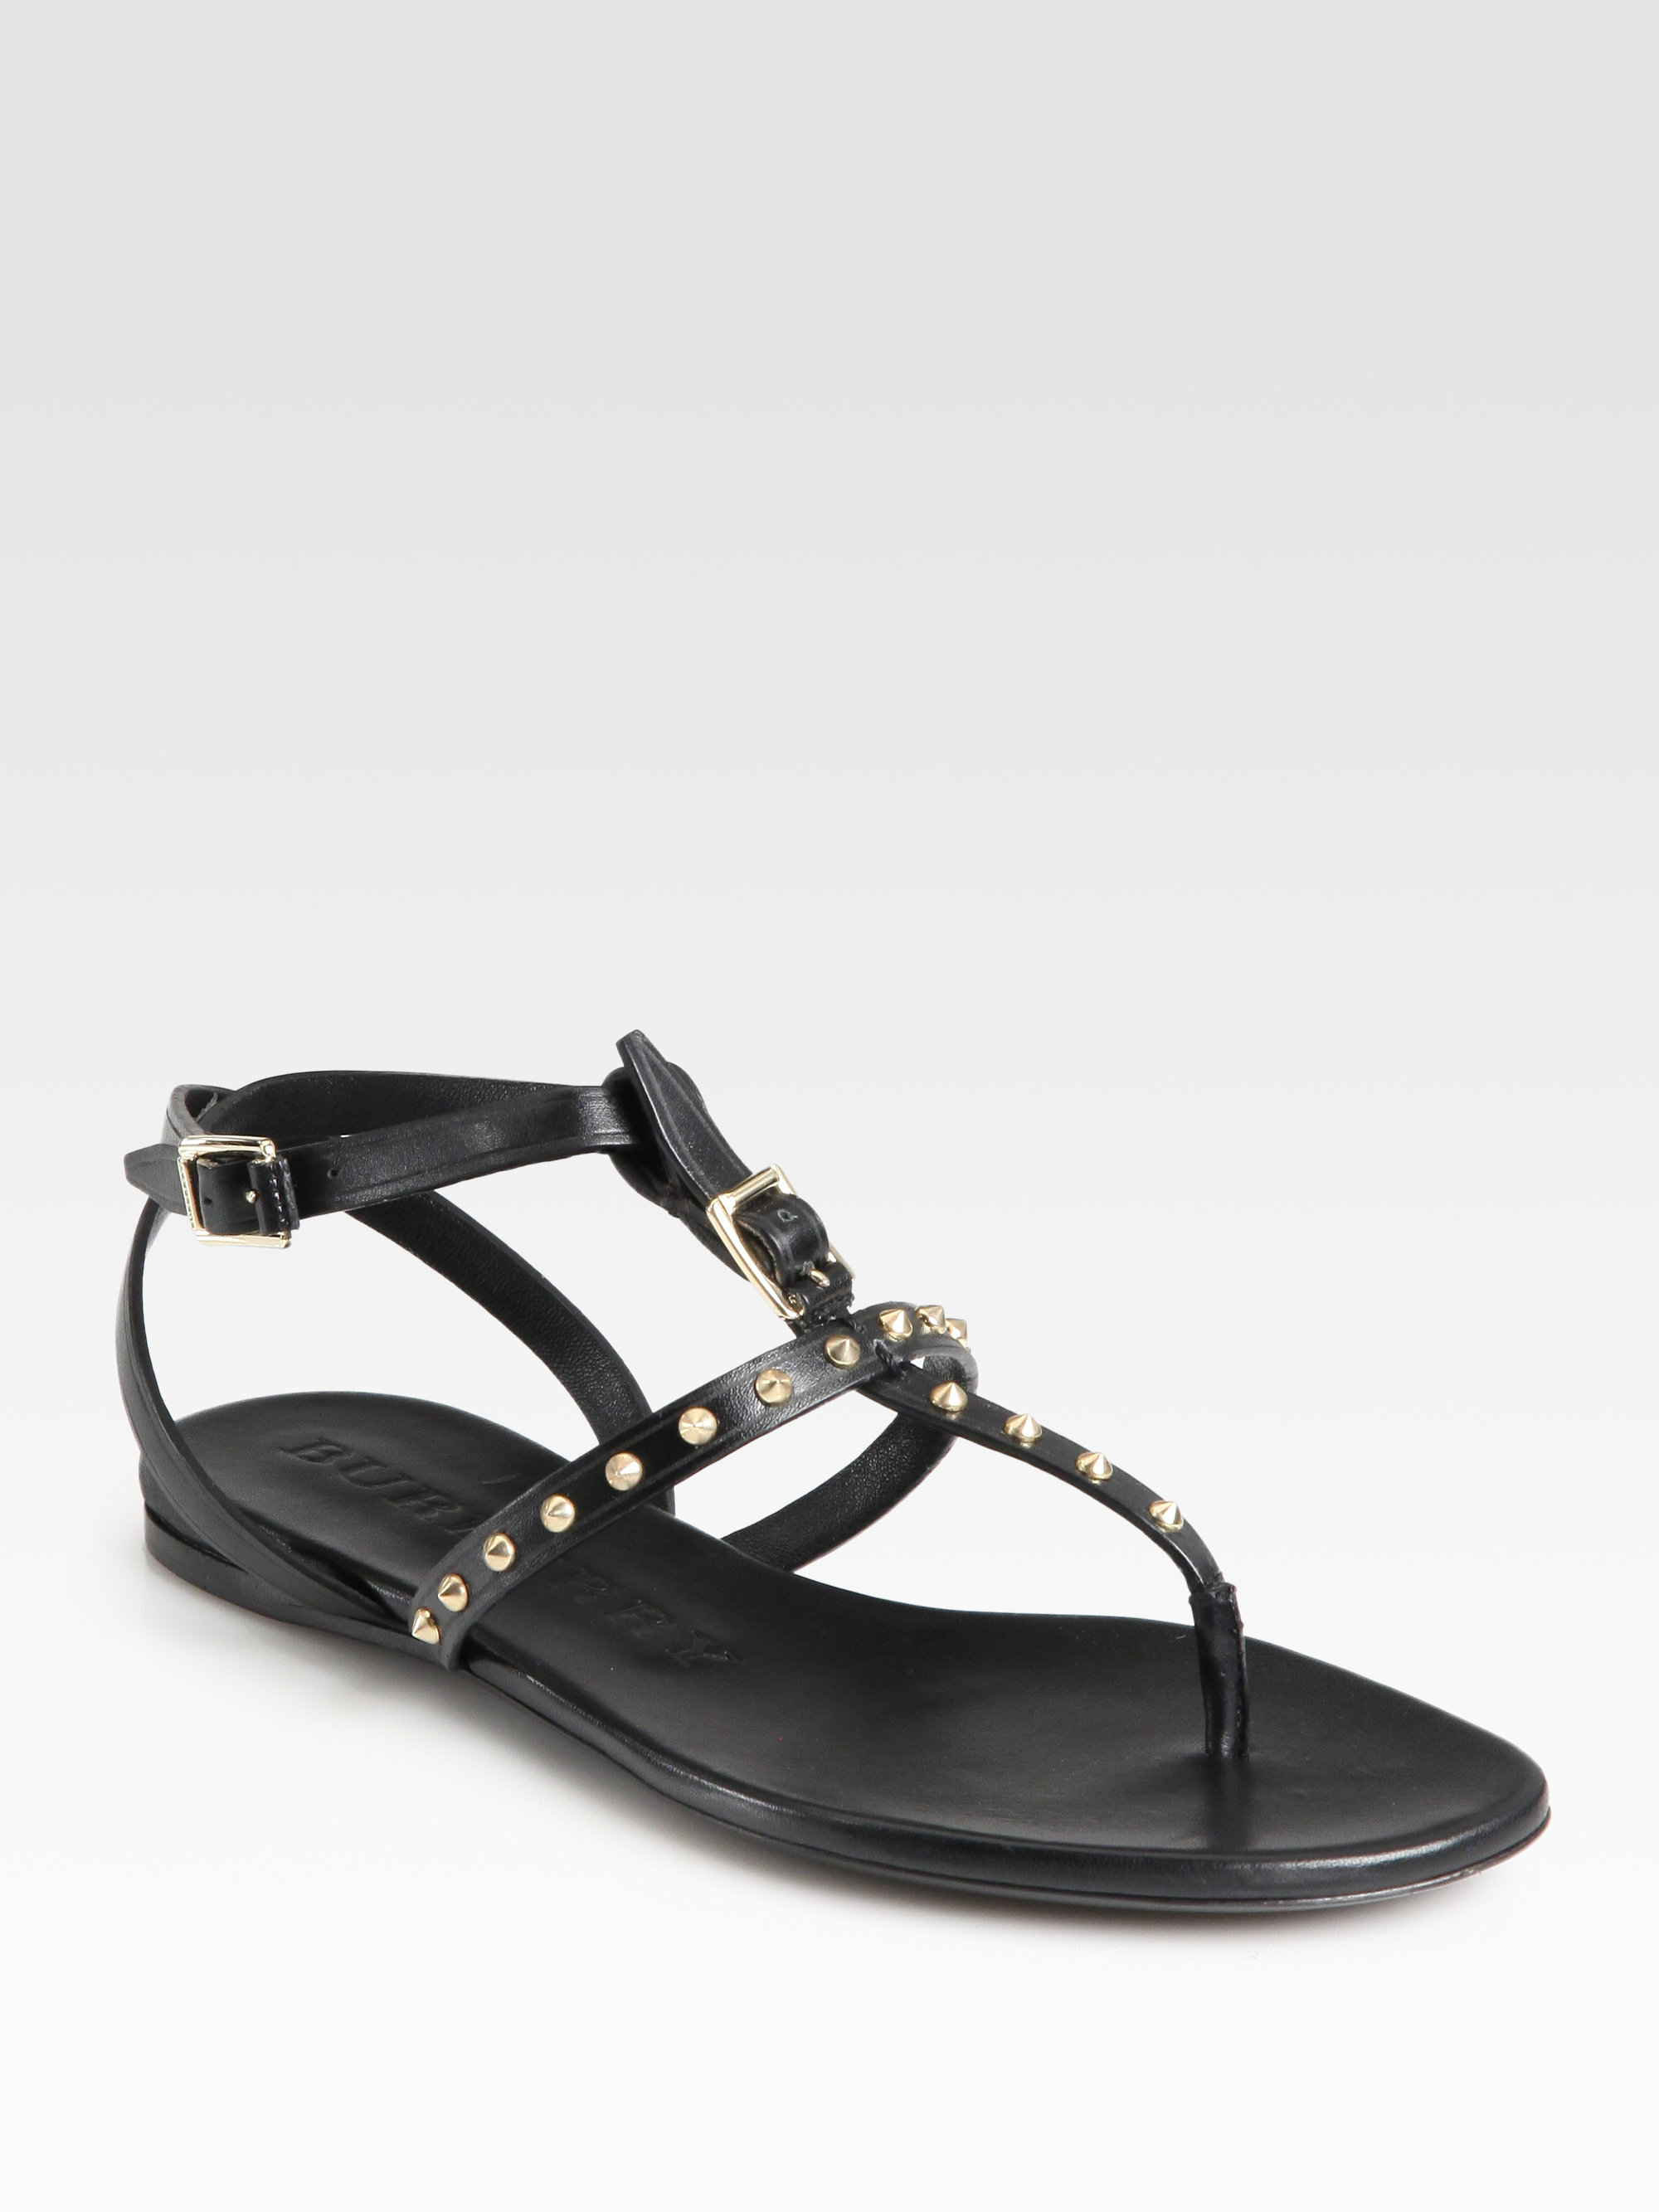 7dbdafc4a65 Lyst - Burberry Masefield Studded Leather T-Strap Sandals in Black